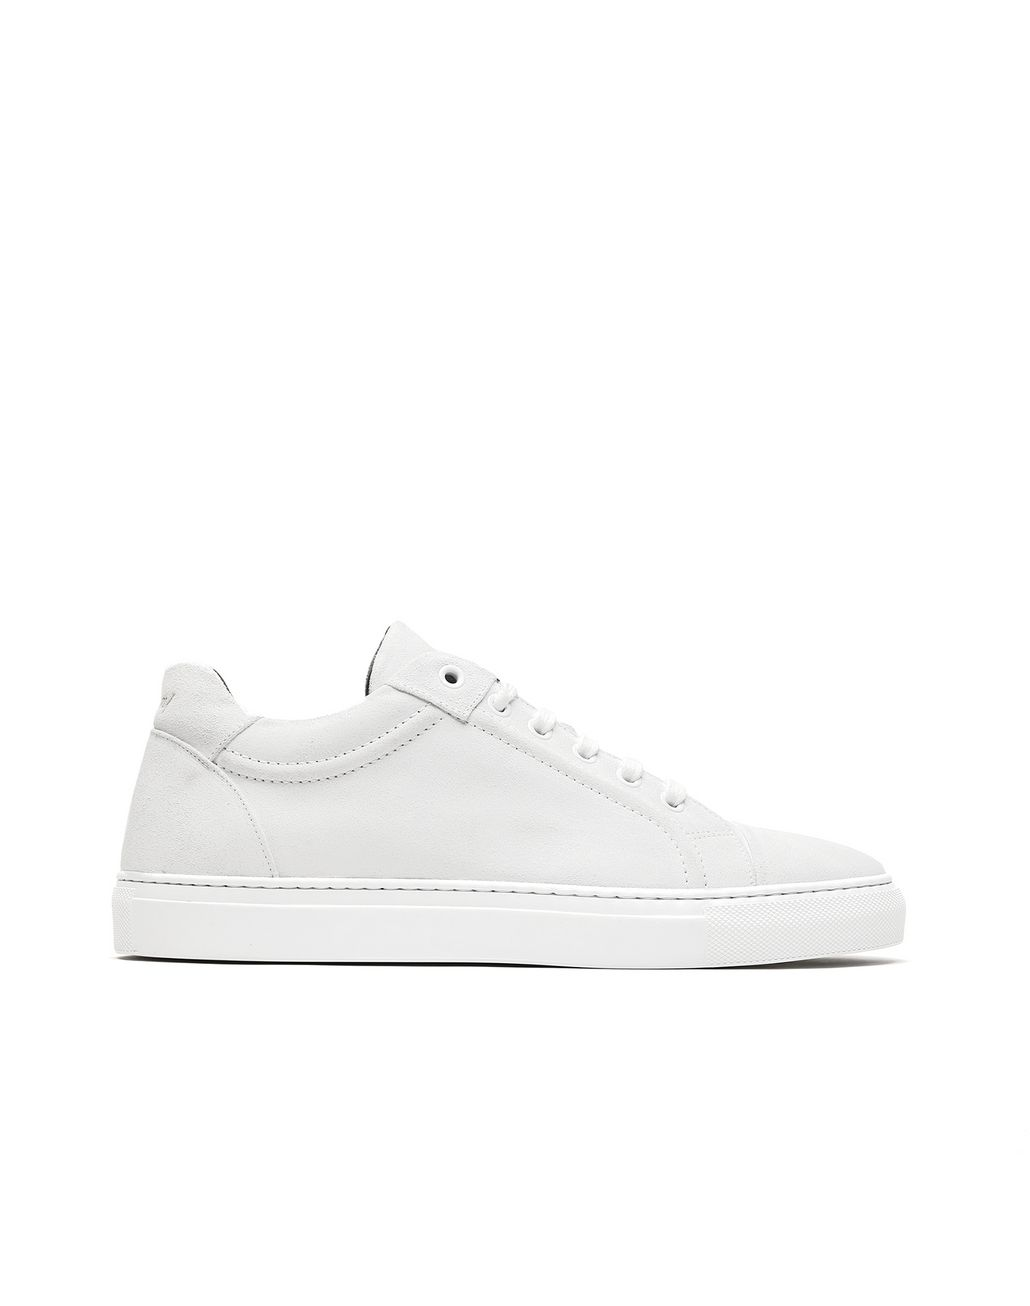 BRIONI White Suede Sneakers. Sneakers Man f